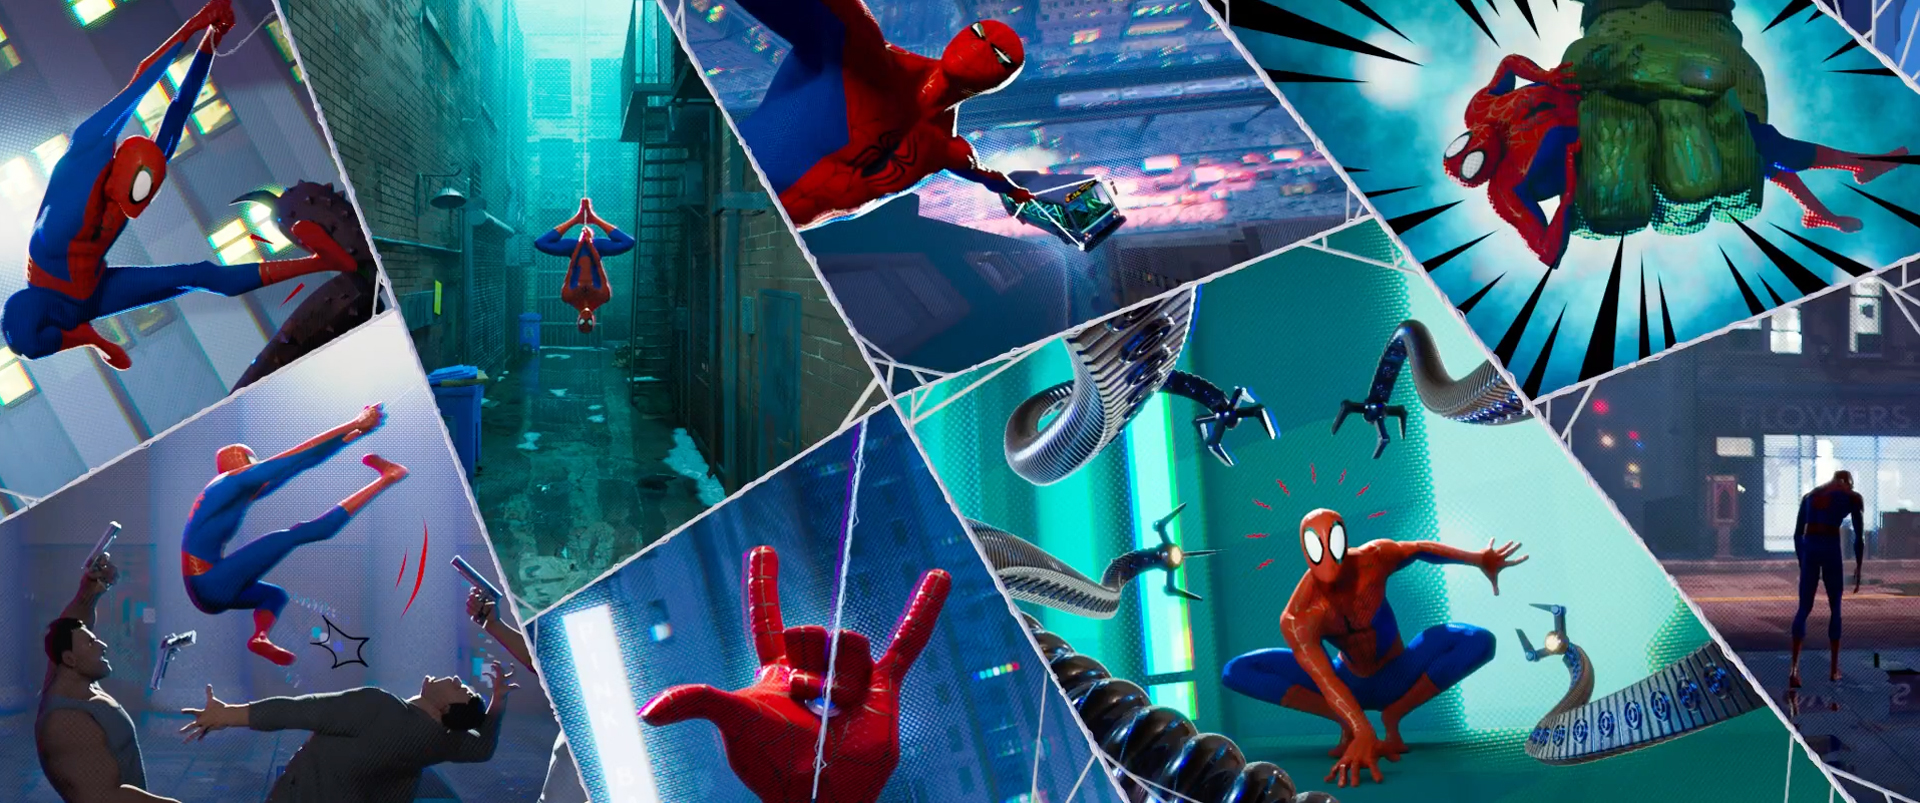 Image result for Into the Spider-verse music